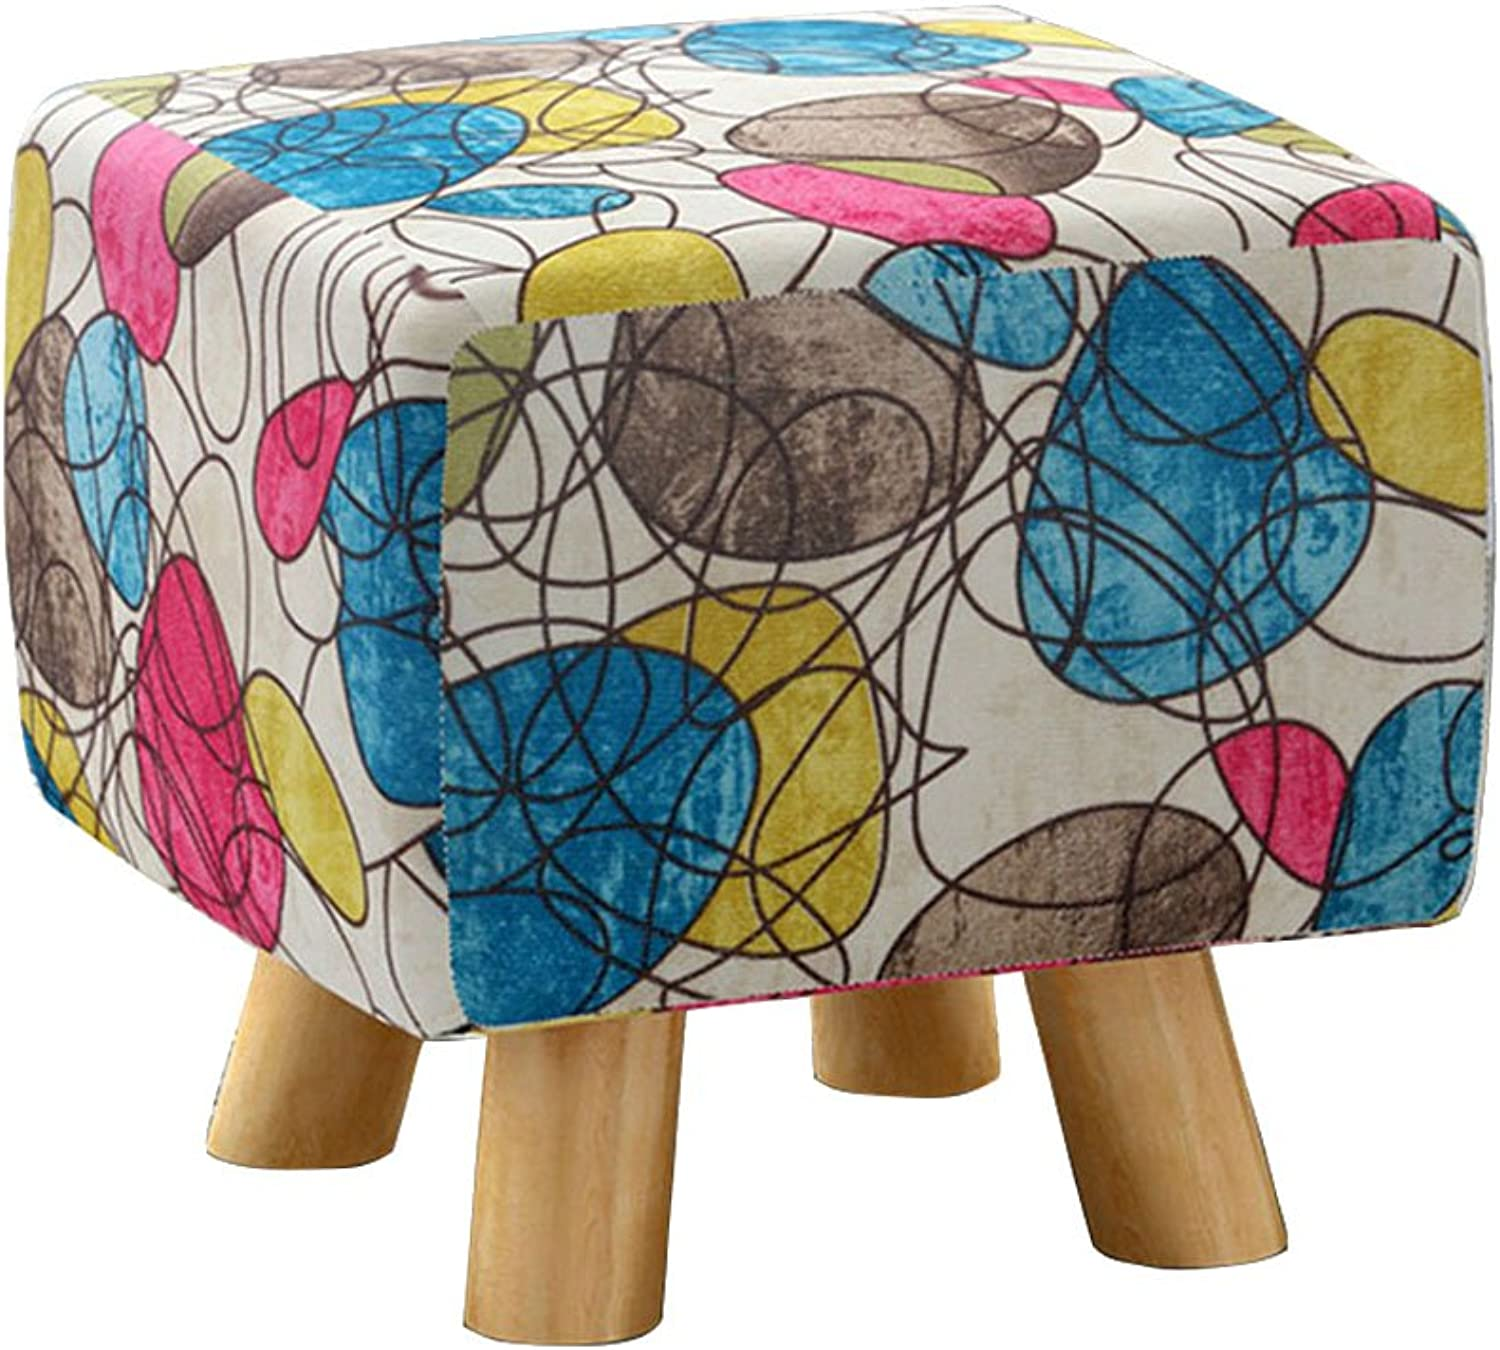 Square Stool Fabric Sofa Stool Four-Legged Stool Multifunctional Footstool shoes Bench Fashion Stool Creative shoes Bench Chair Solid Wood stools Bedside Stool   30  30  27cm (color   B)